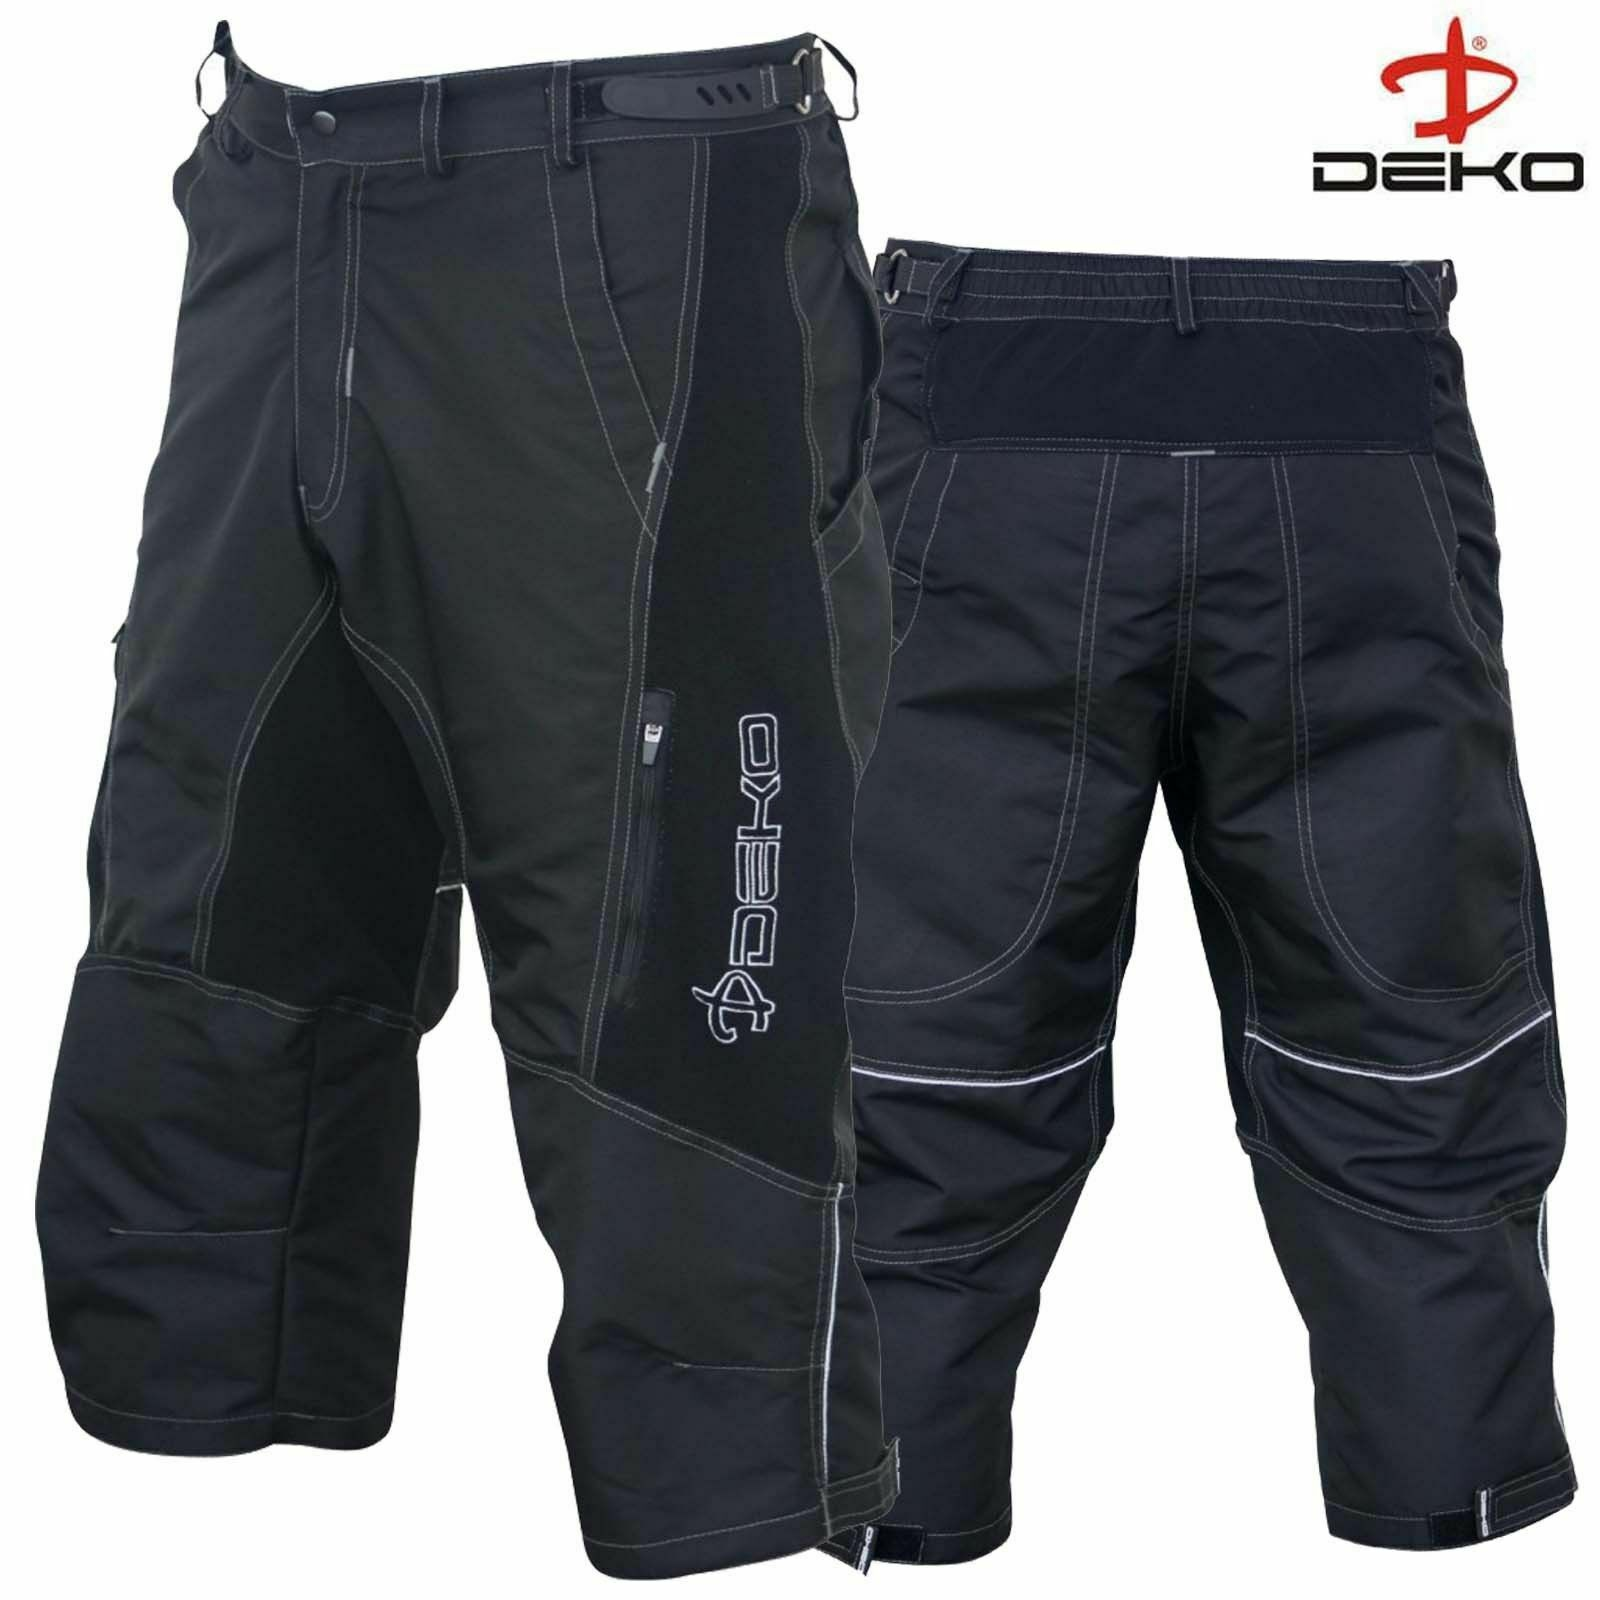 Cycling Baggy Shorts MTB Mountain Bike Shorts  Pants Sport Bicycle Short 901  order now lowest prices